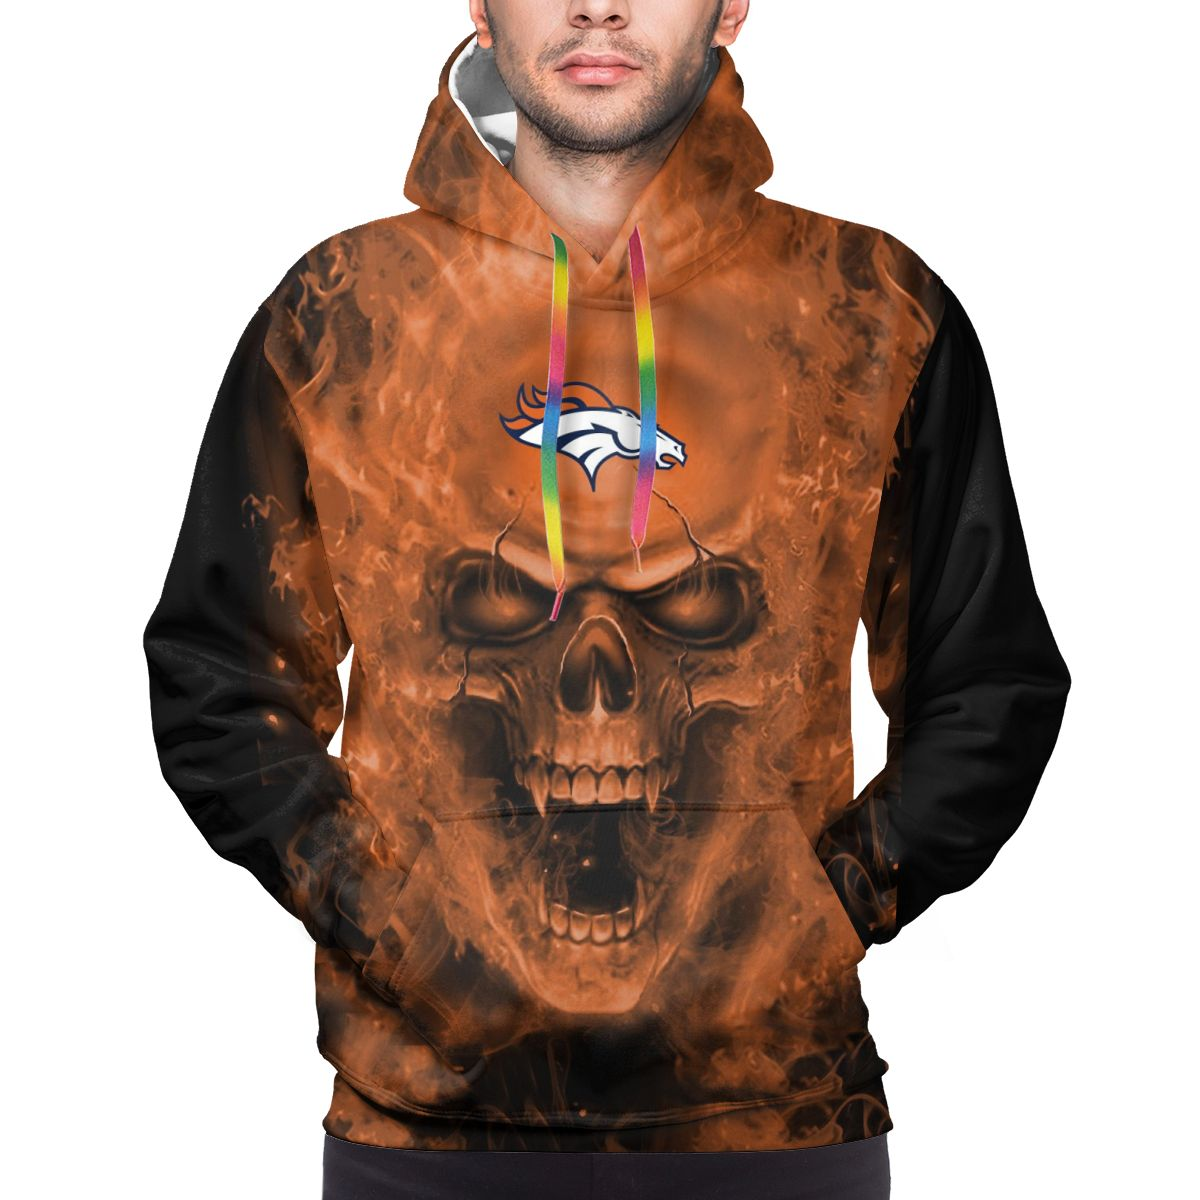 3D Skull Broncos Logo Print Hoodies For Men Pullover Sweatshirt